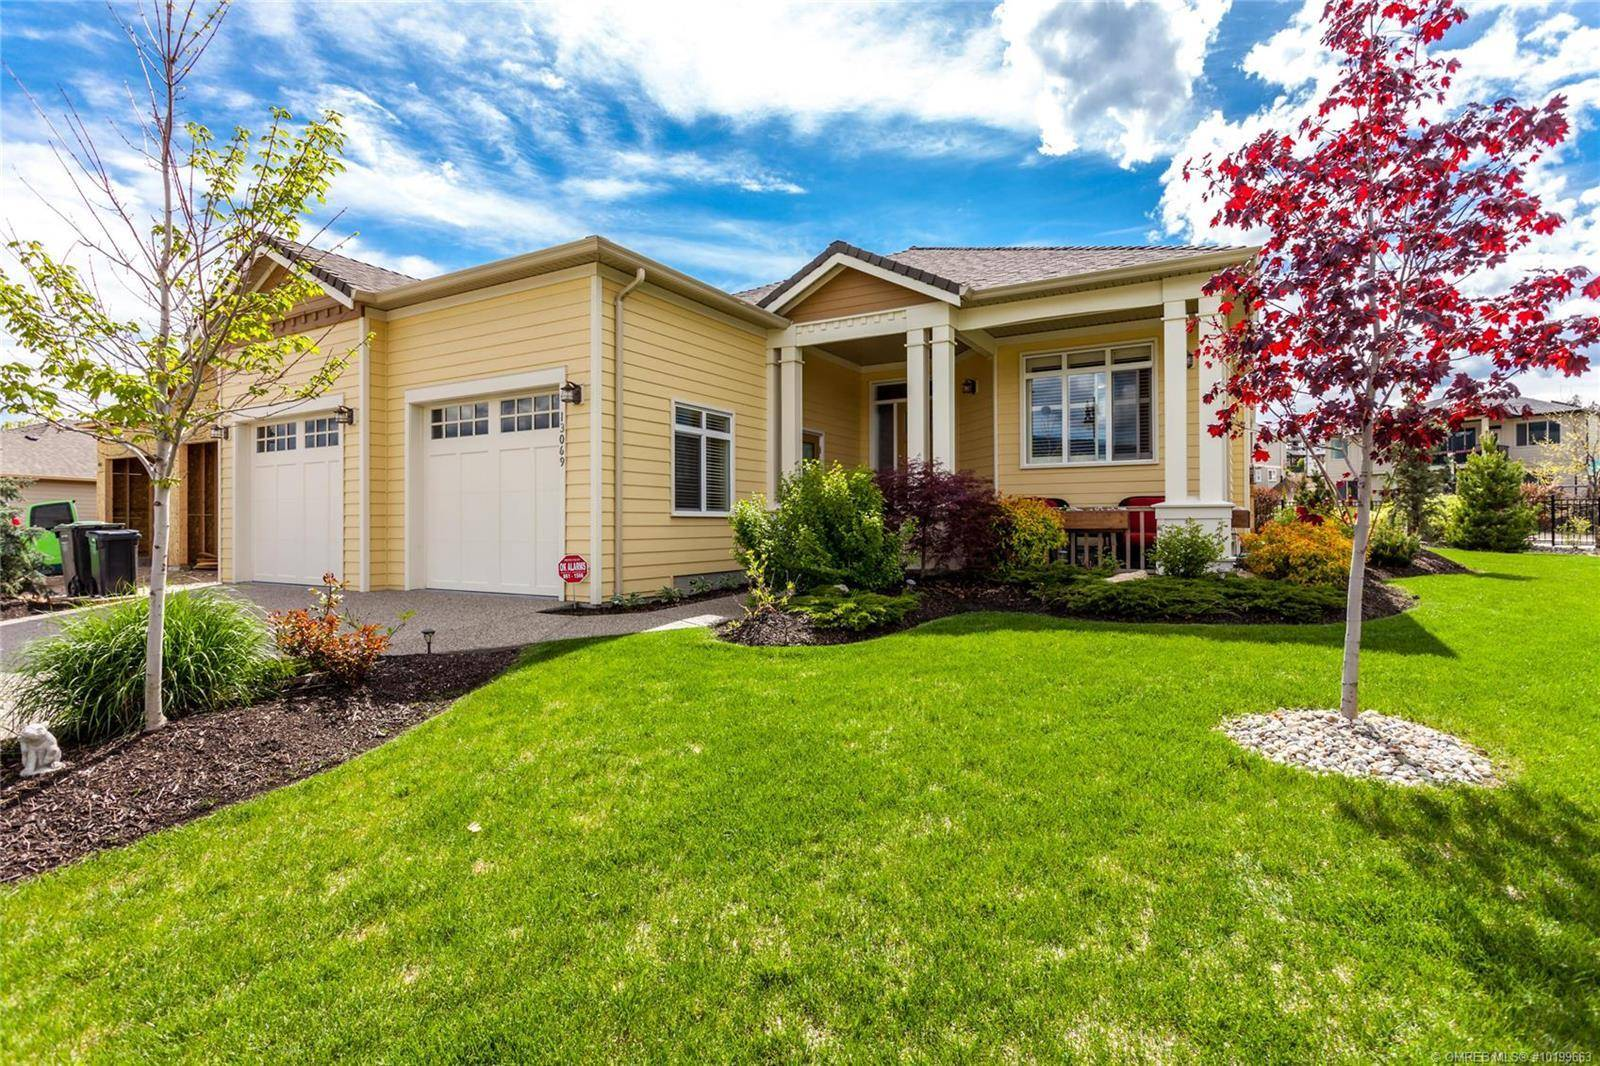 House for sale at 13069 Staccato Dr Lake Country British Columbia - MLS: 10199663